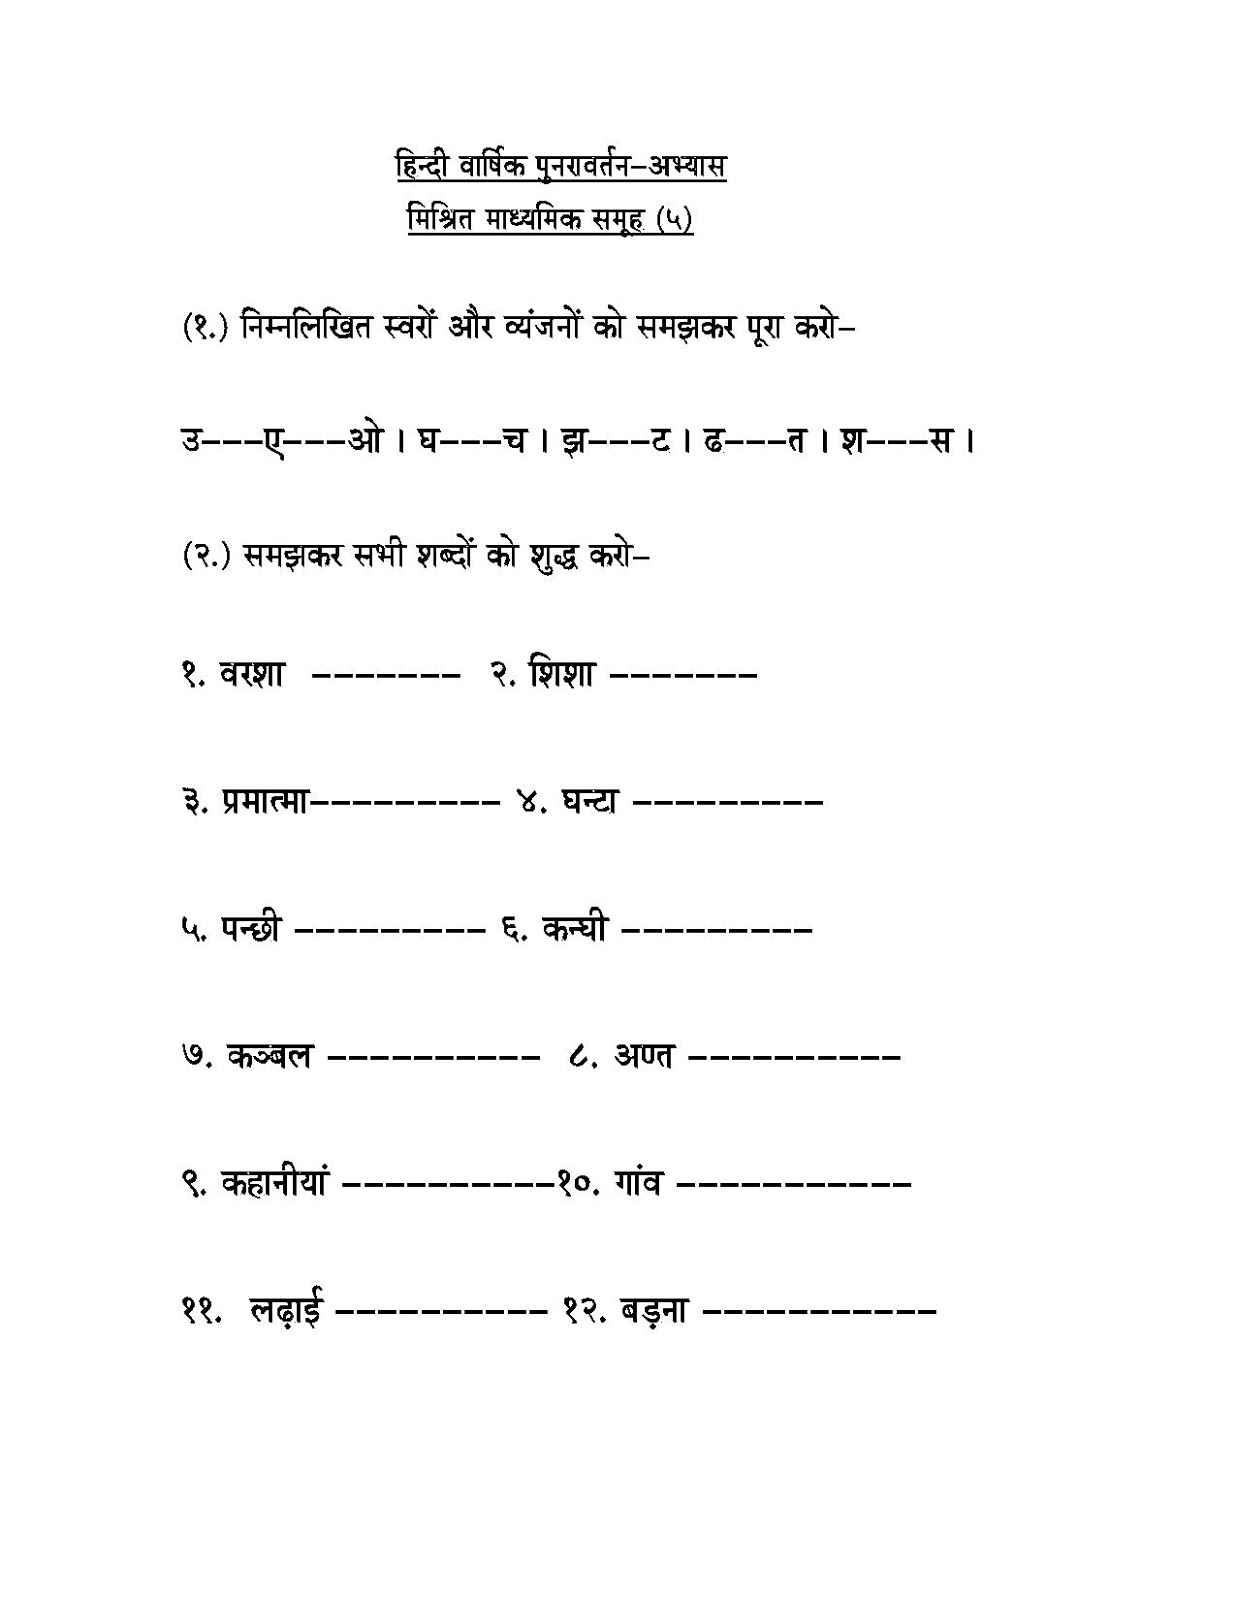 Hindi Grammar Work Sheet Collection For Classes 5 6 7 Amp 8 Review Worksheet Containing All The